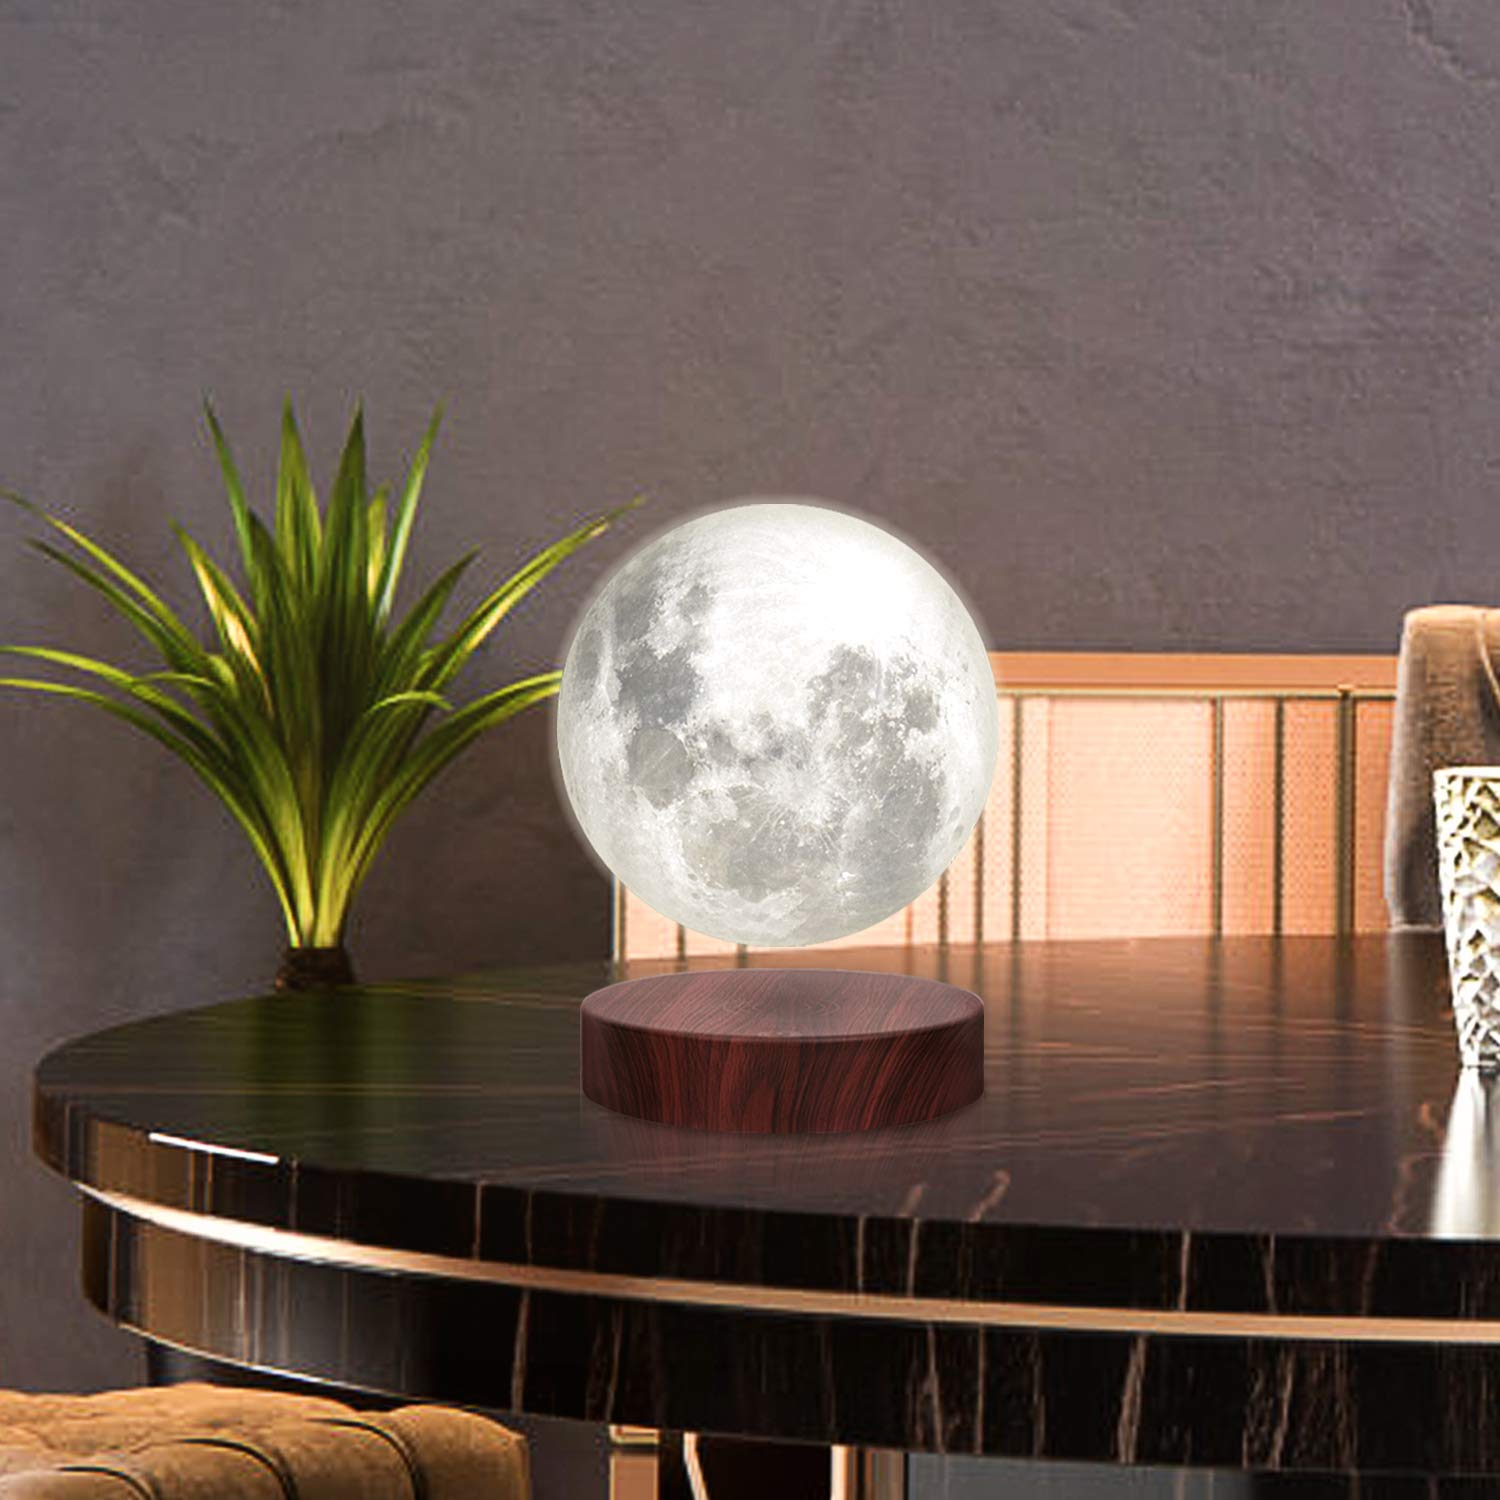 VGAzer Levitating Moon Lamp,Floating and Spinning in Air Freely with Luxury Wooden Base and 3D Printing LED Moon Light 3 Colors,for Unique Gifts,Room Decor,Night Light,Office Desk Tech Toys - 6 Inch